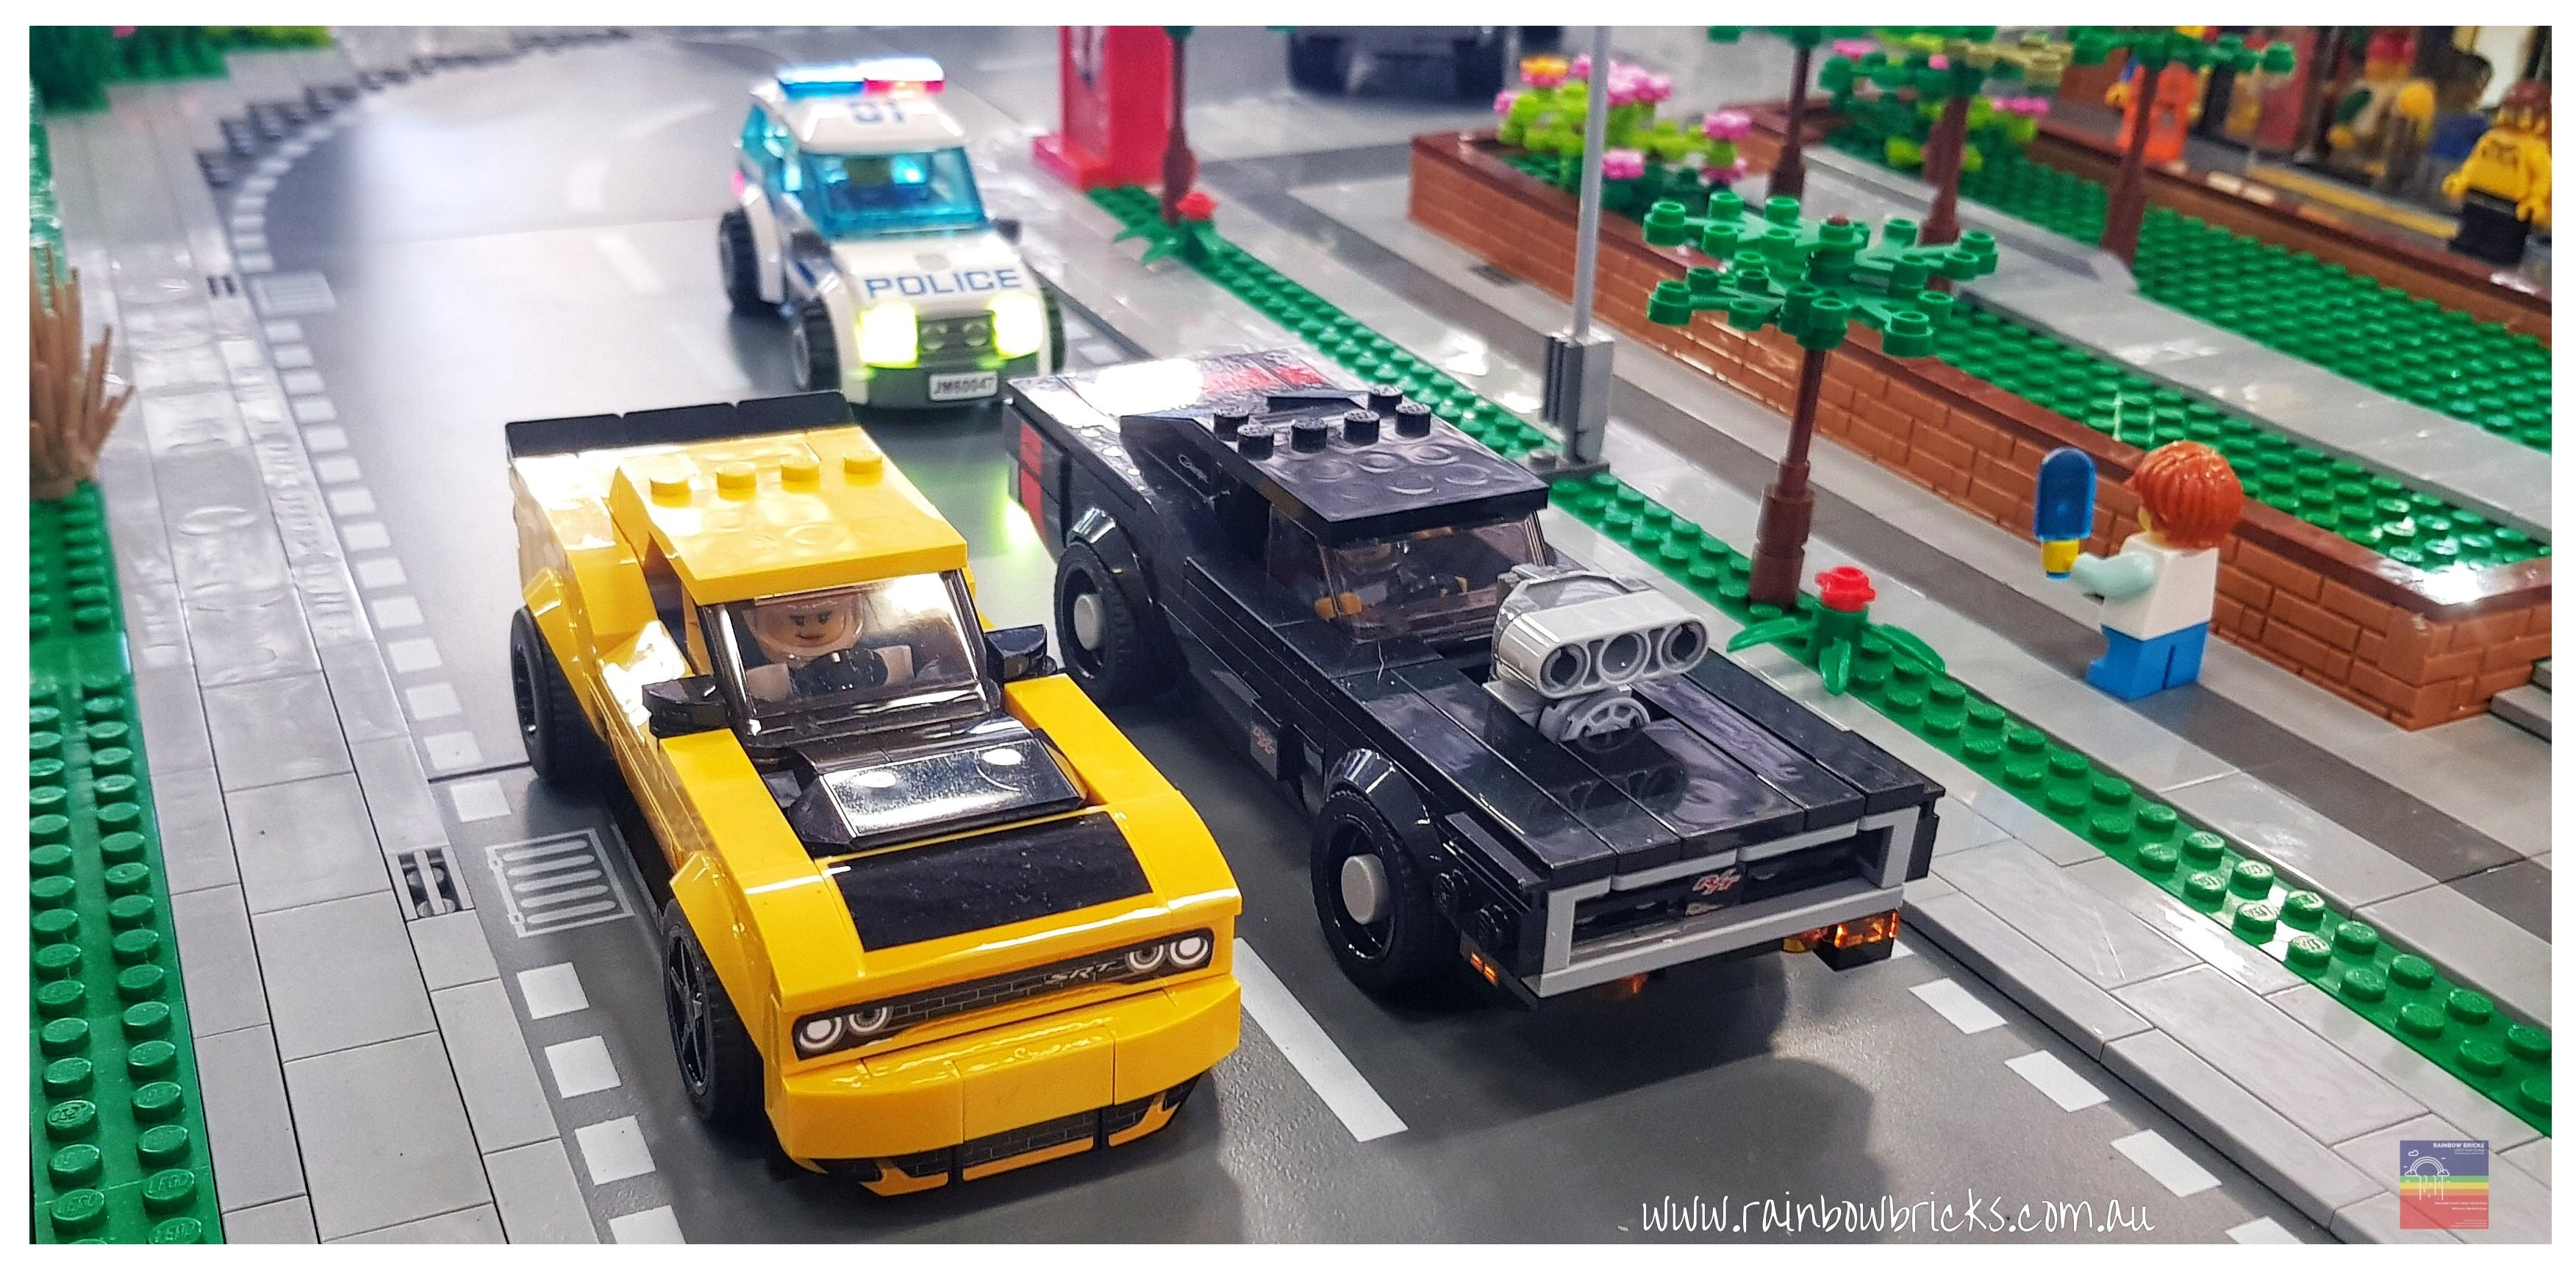 Brickfest at The Bay A Lego Fan Event - Accommodation Bookings